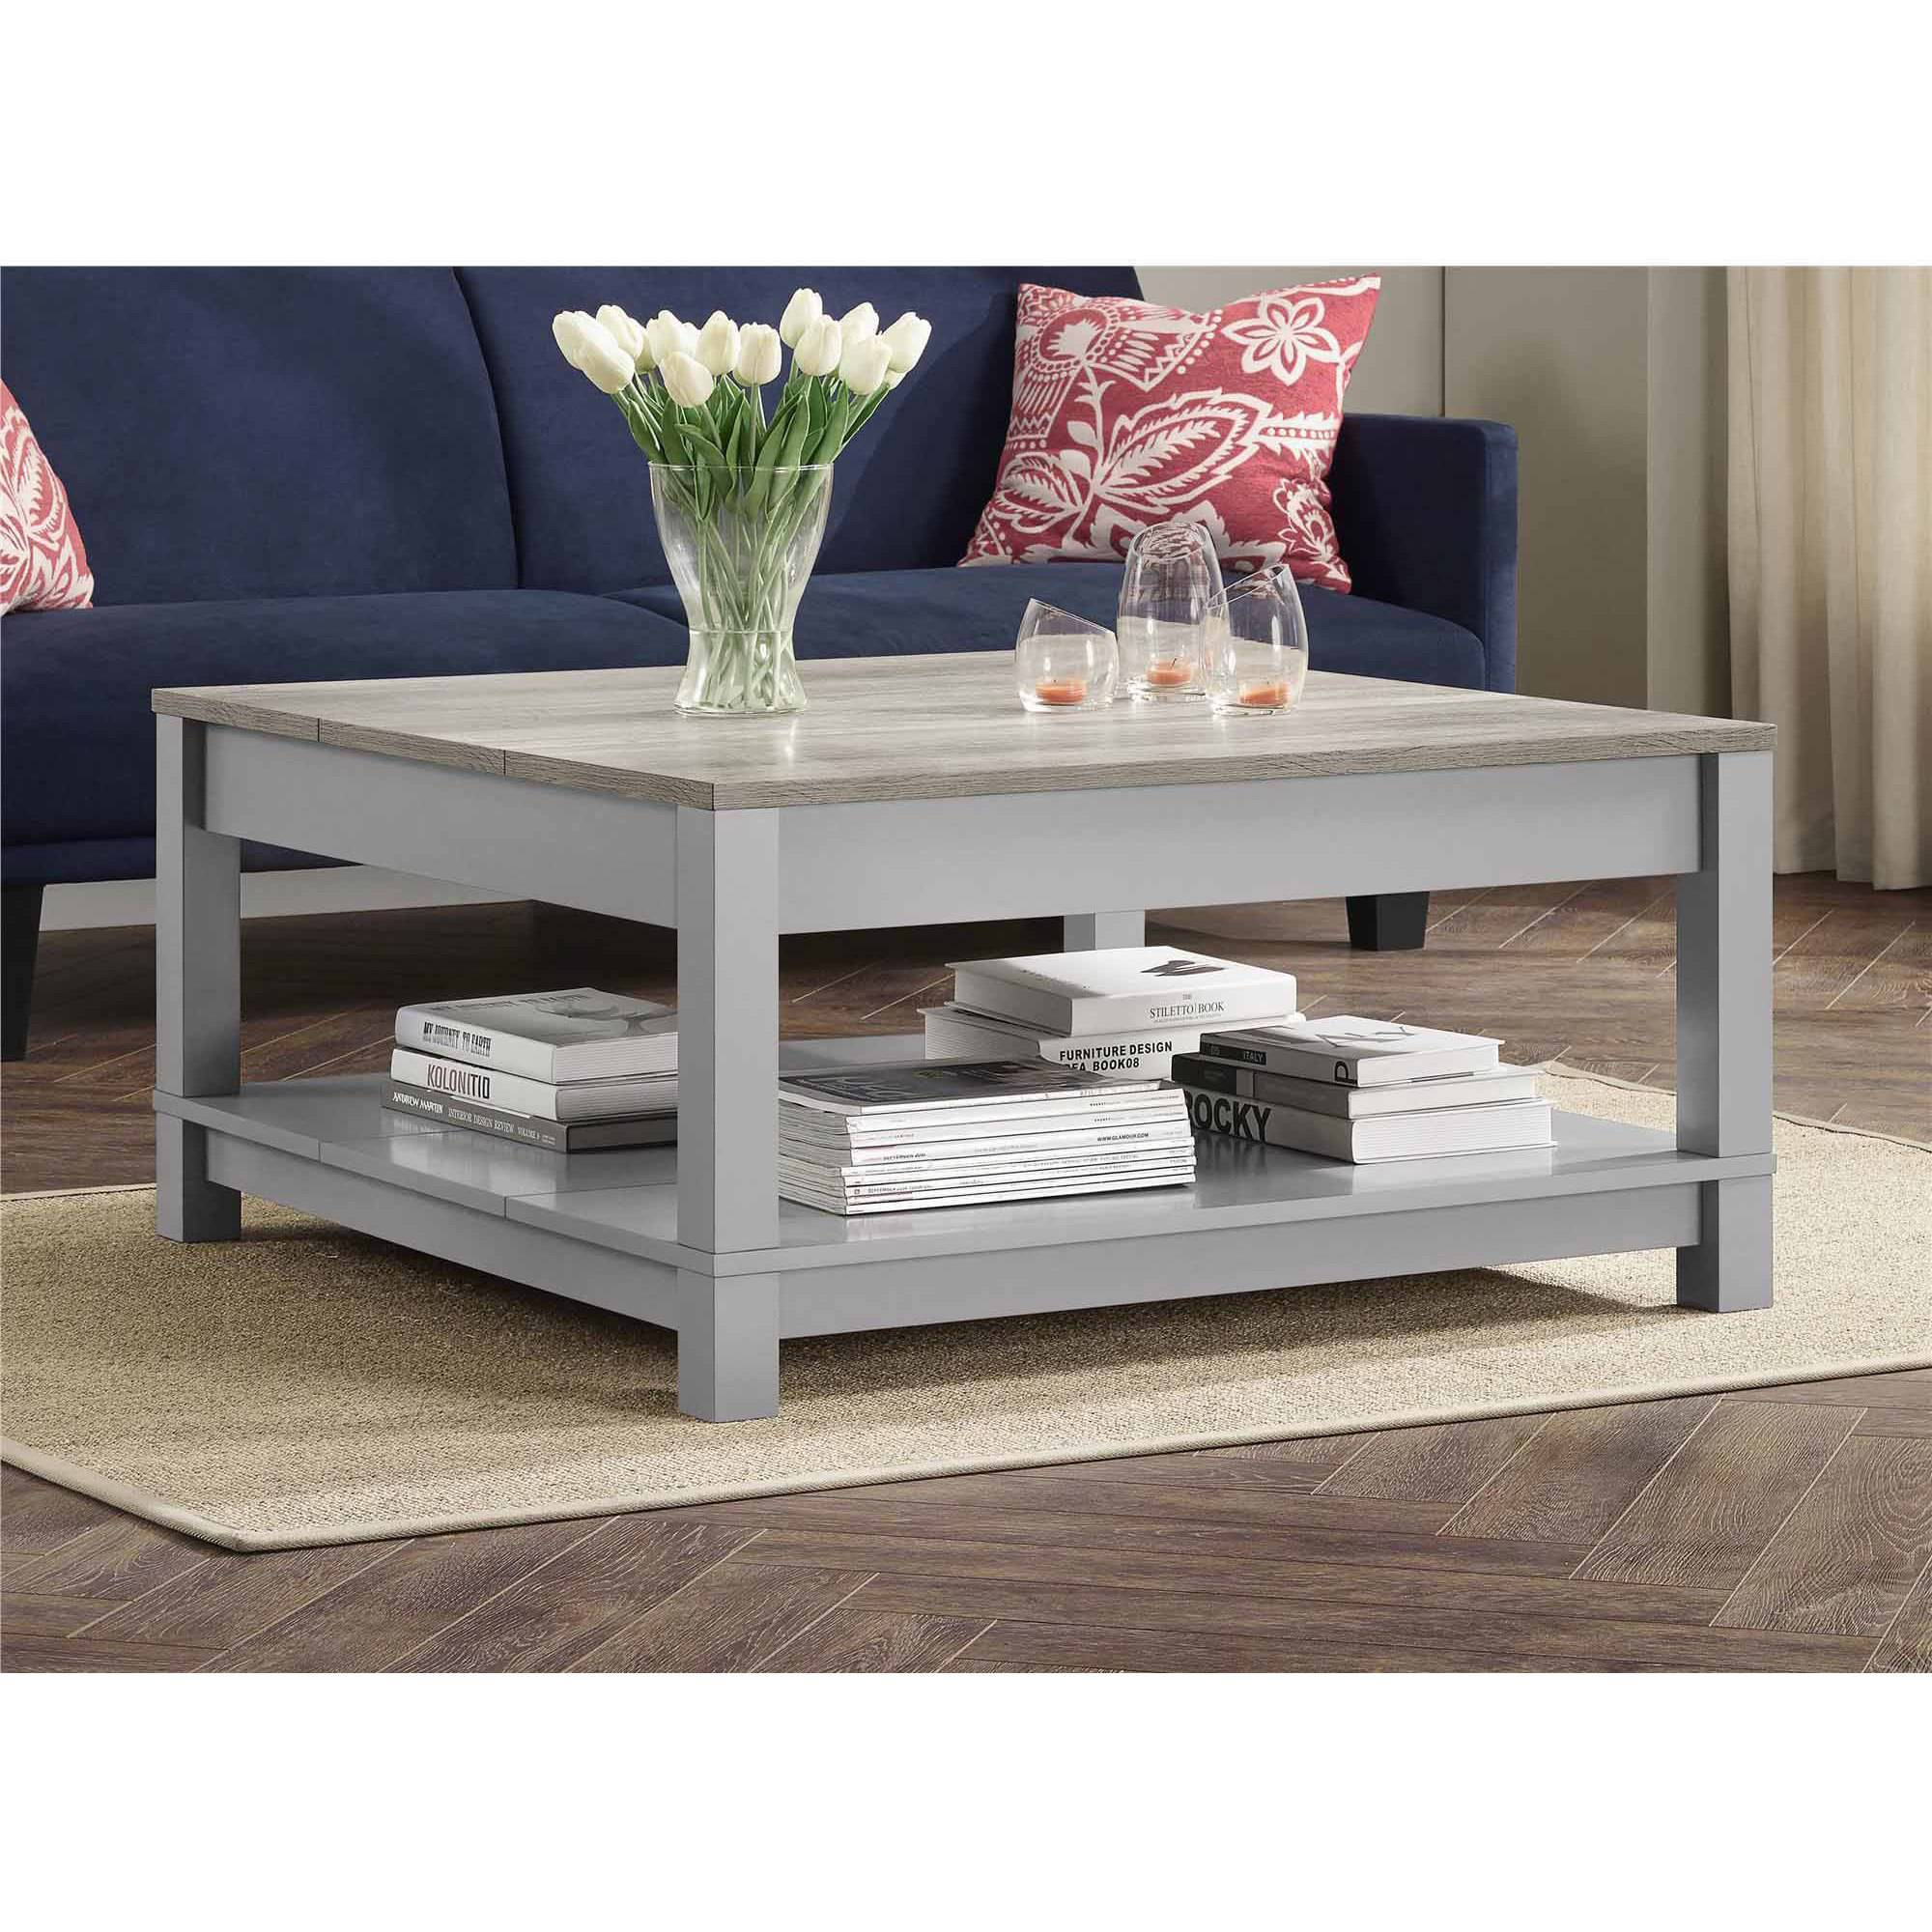 Better Homes and Gardens Langley Bay Coffee Table  Gray Sonoma Oak   Walmart  com. Better Homes and Gardens Langley Bay Coffee Table  Gray Sonoma Oak